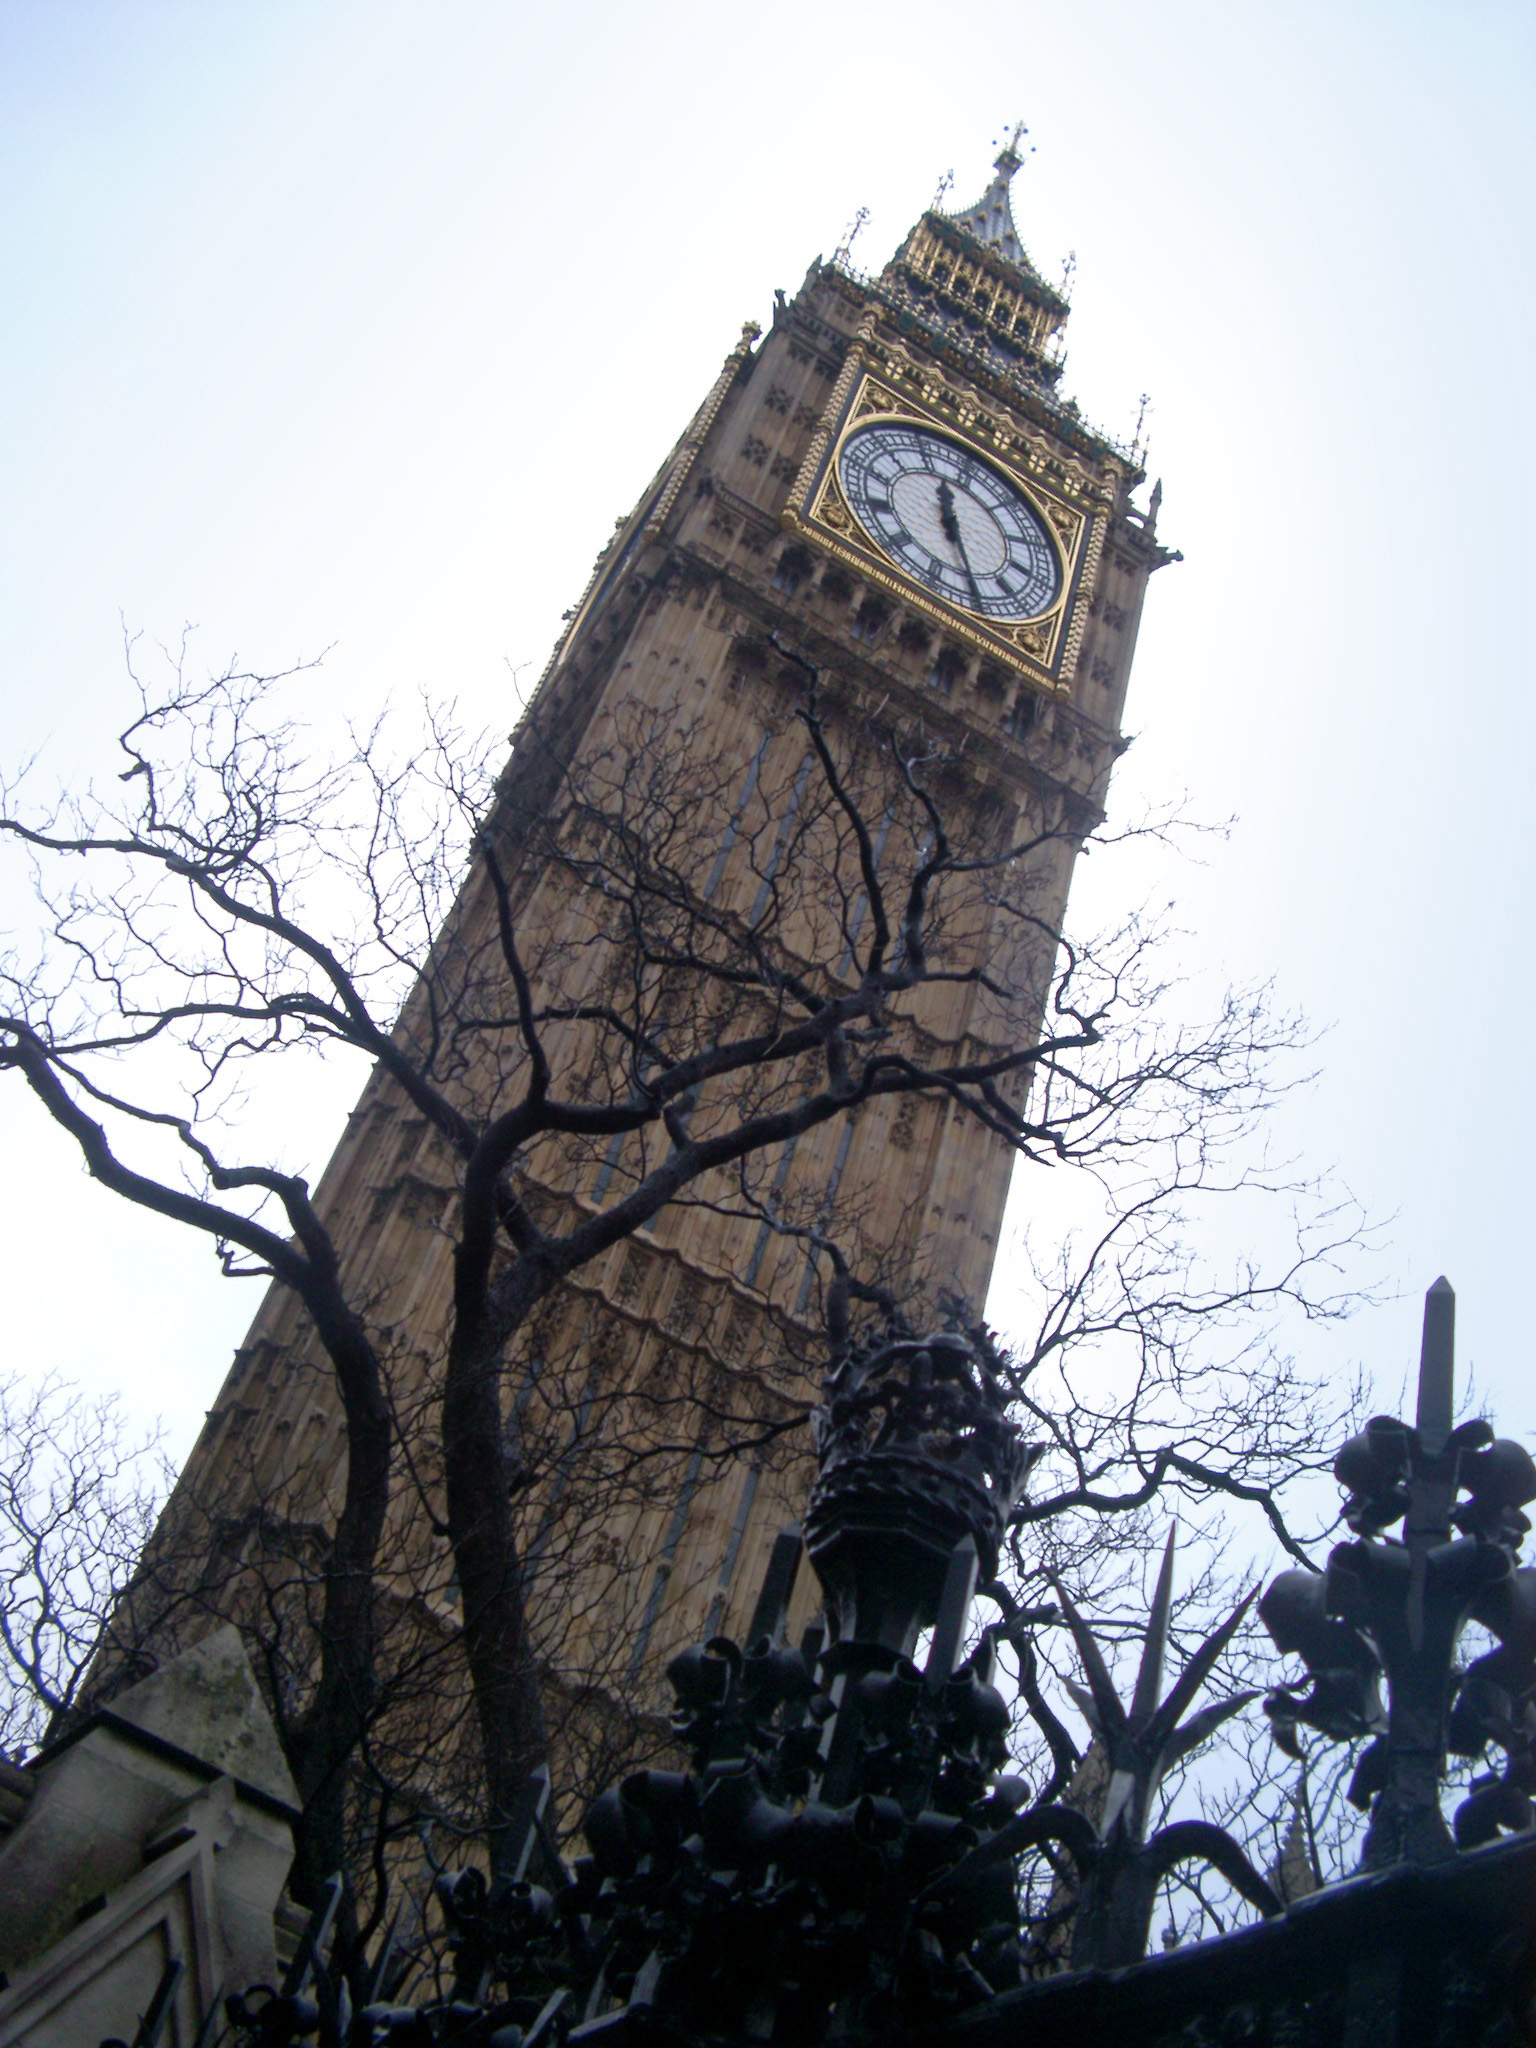 Low angle view looking up the classical Gothic style exterior of the Big Ben clock tower, Westminster, an iconic landmark for London and popular tourist attraction